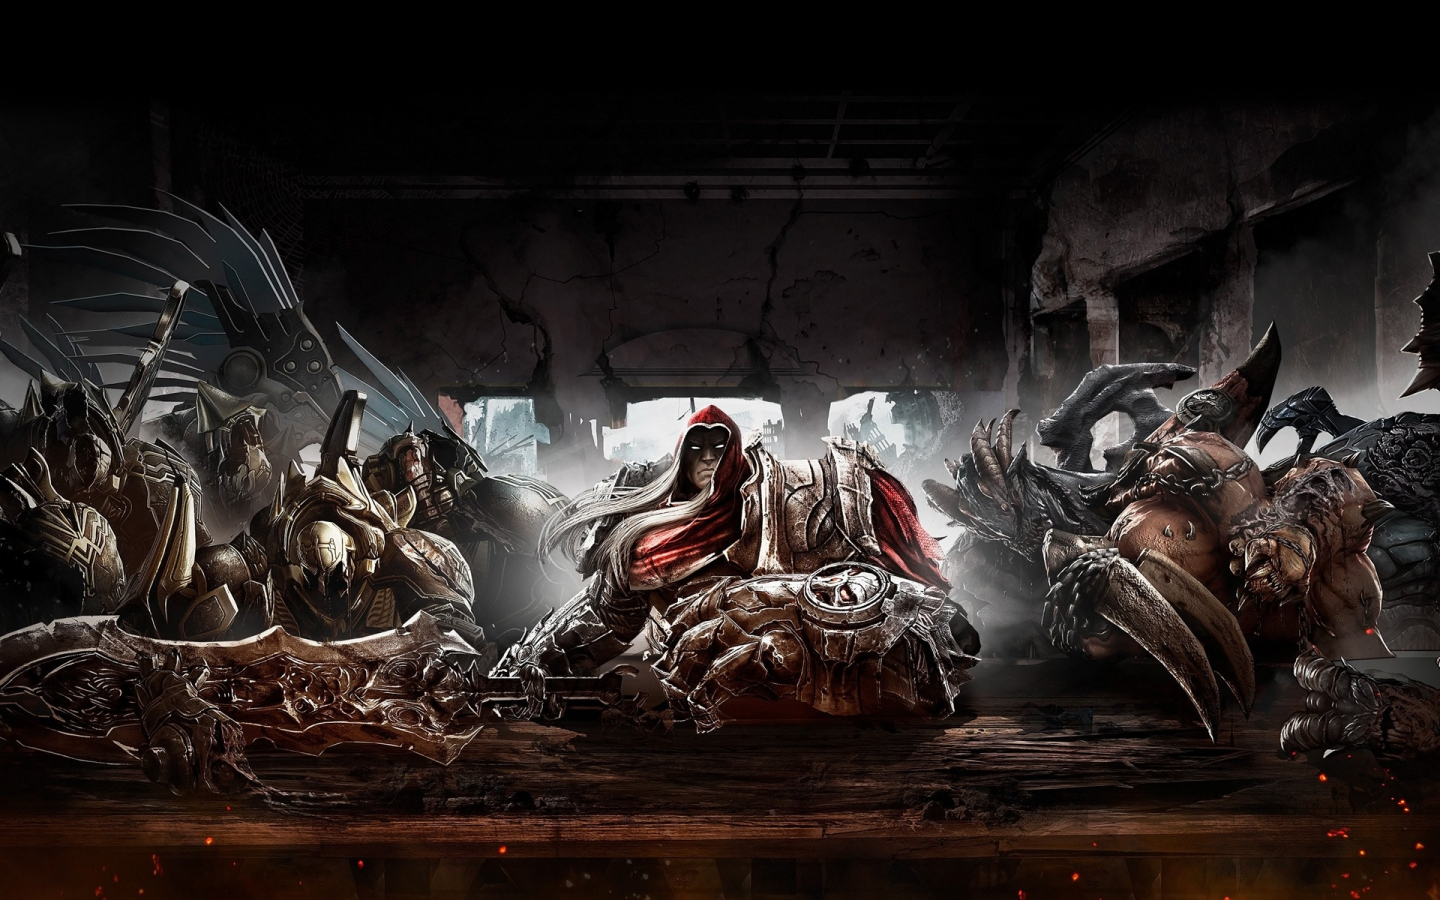 Games Wallpapers DARKSIDERS HD WALLPAPERS 3 0372 9001 1920x1200 1440x900